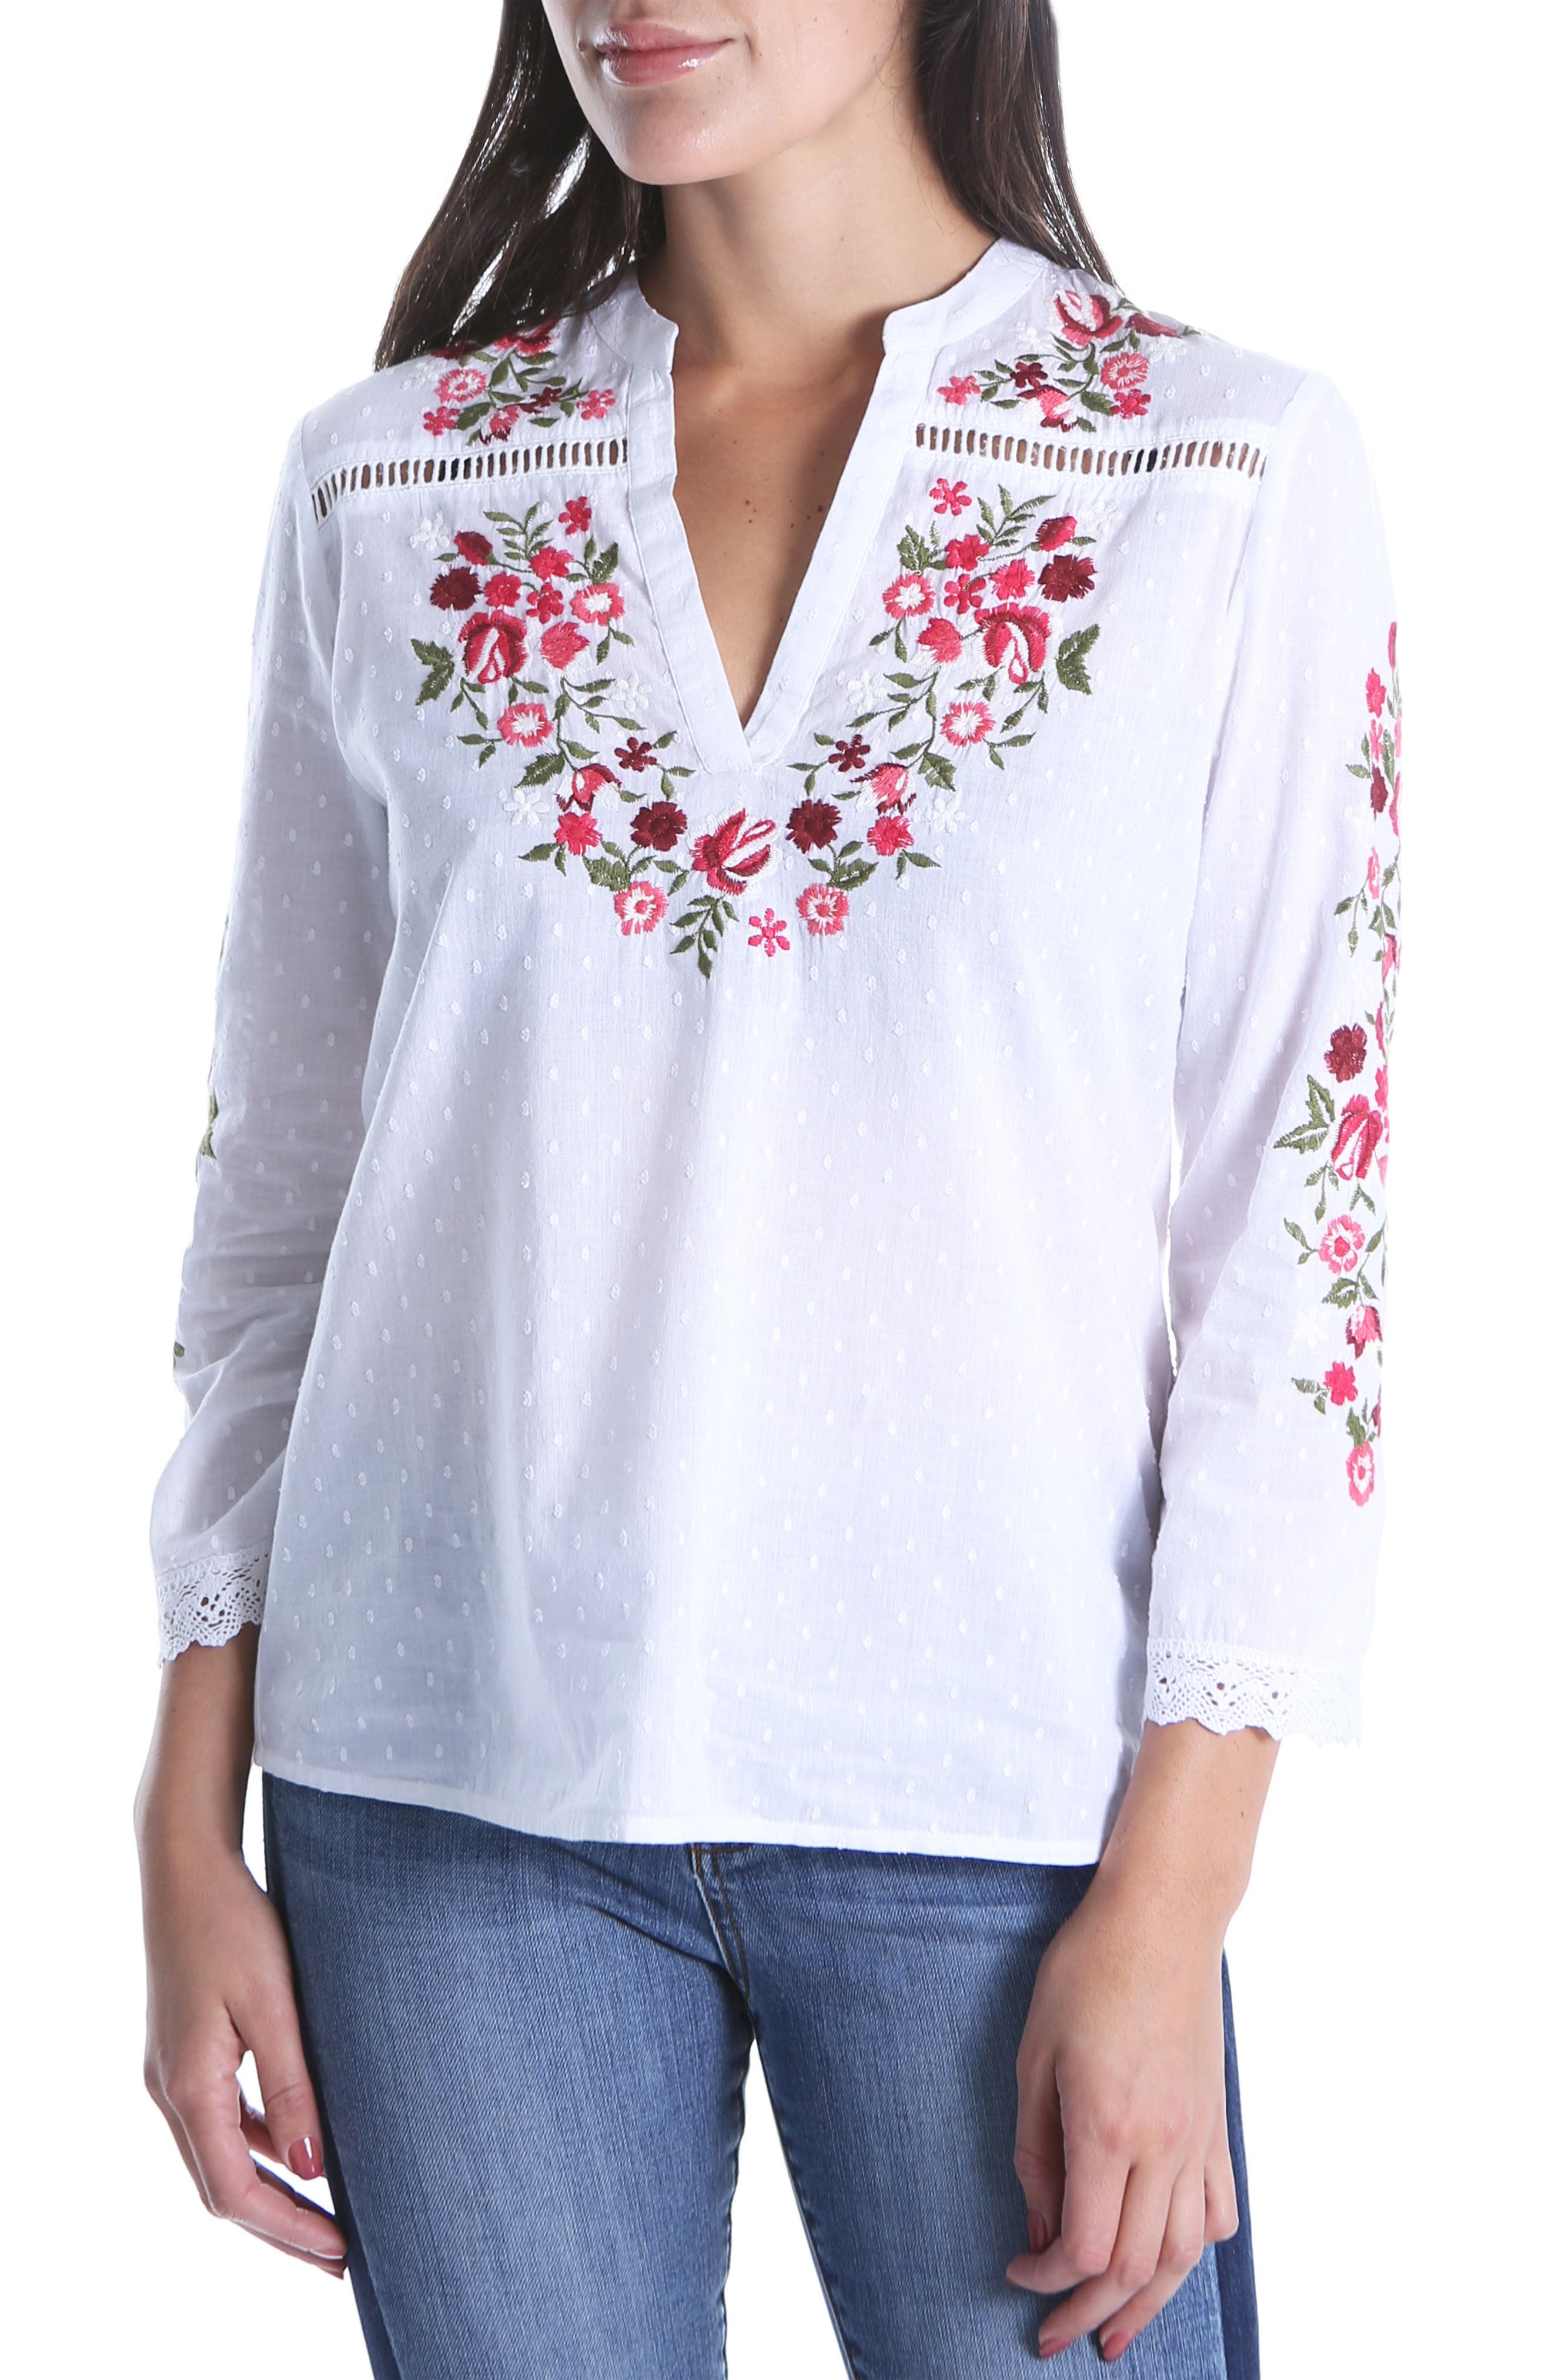 Kat Embroidered Lace Detail Blouse,                         Main,                         color, White